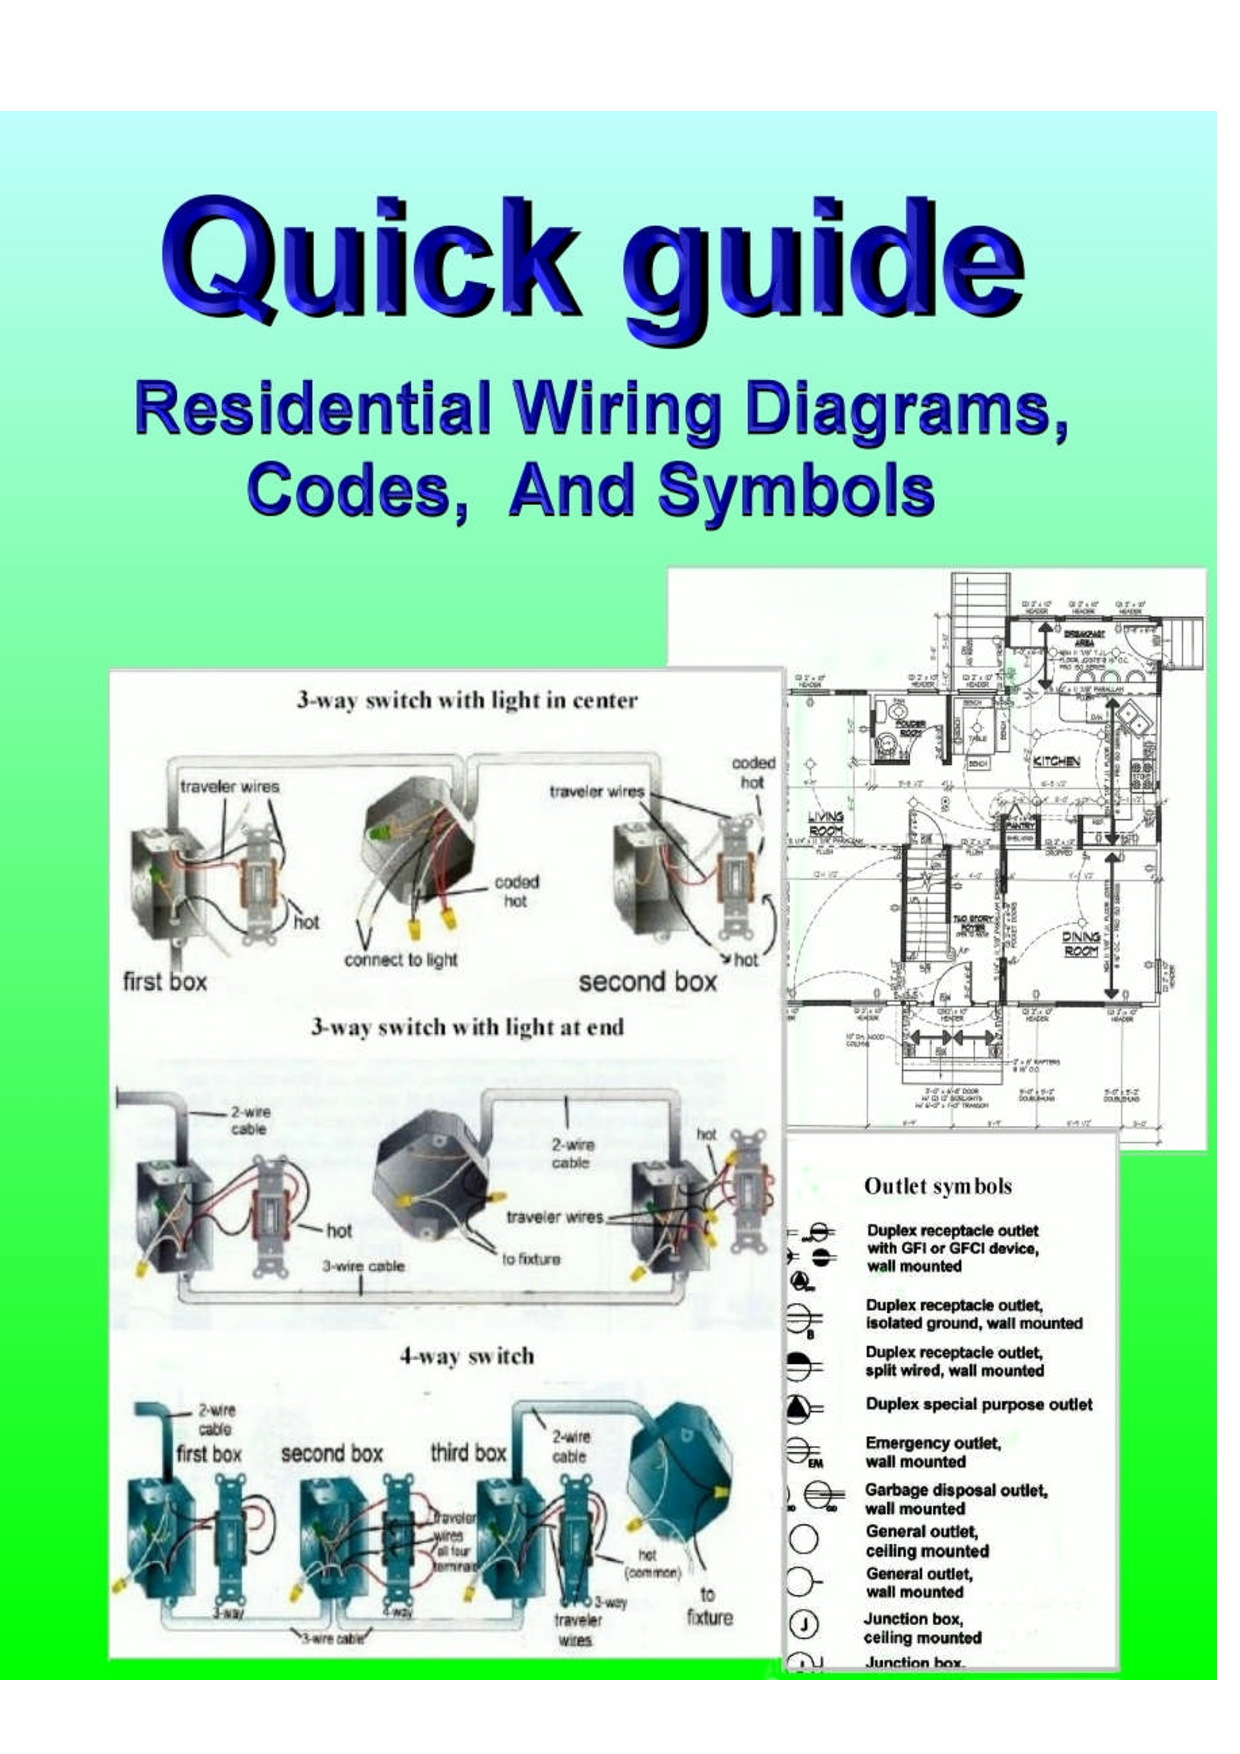 Home electrical wiring diagramspdf download legal documents 39 home electrical wiring diagramspdf download legal documents 39 pages with many diagrams and illustrations cheapraybanclubmaster